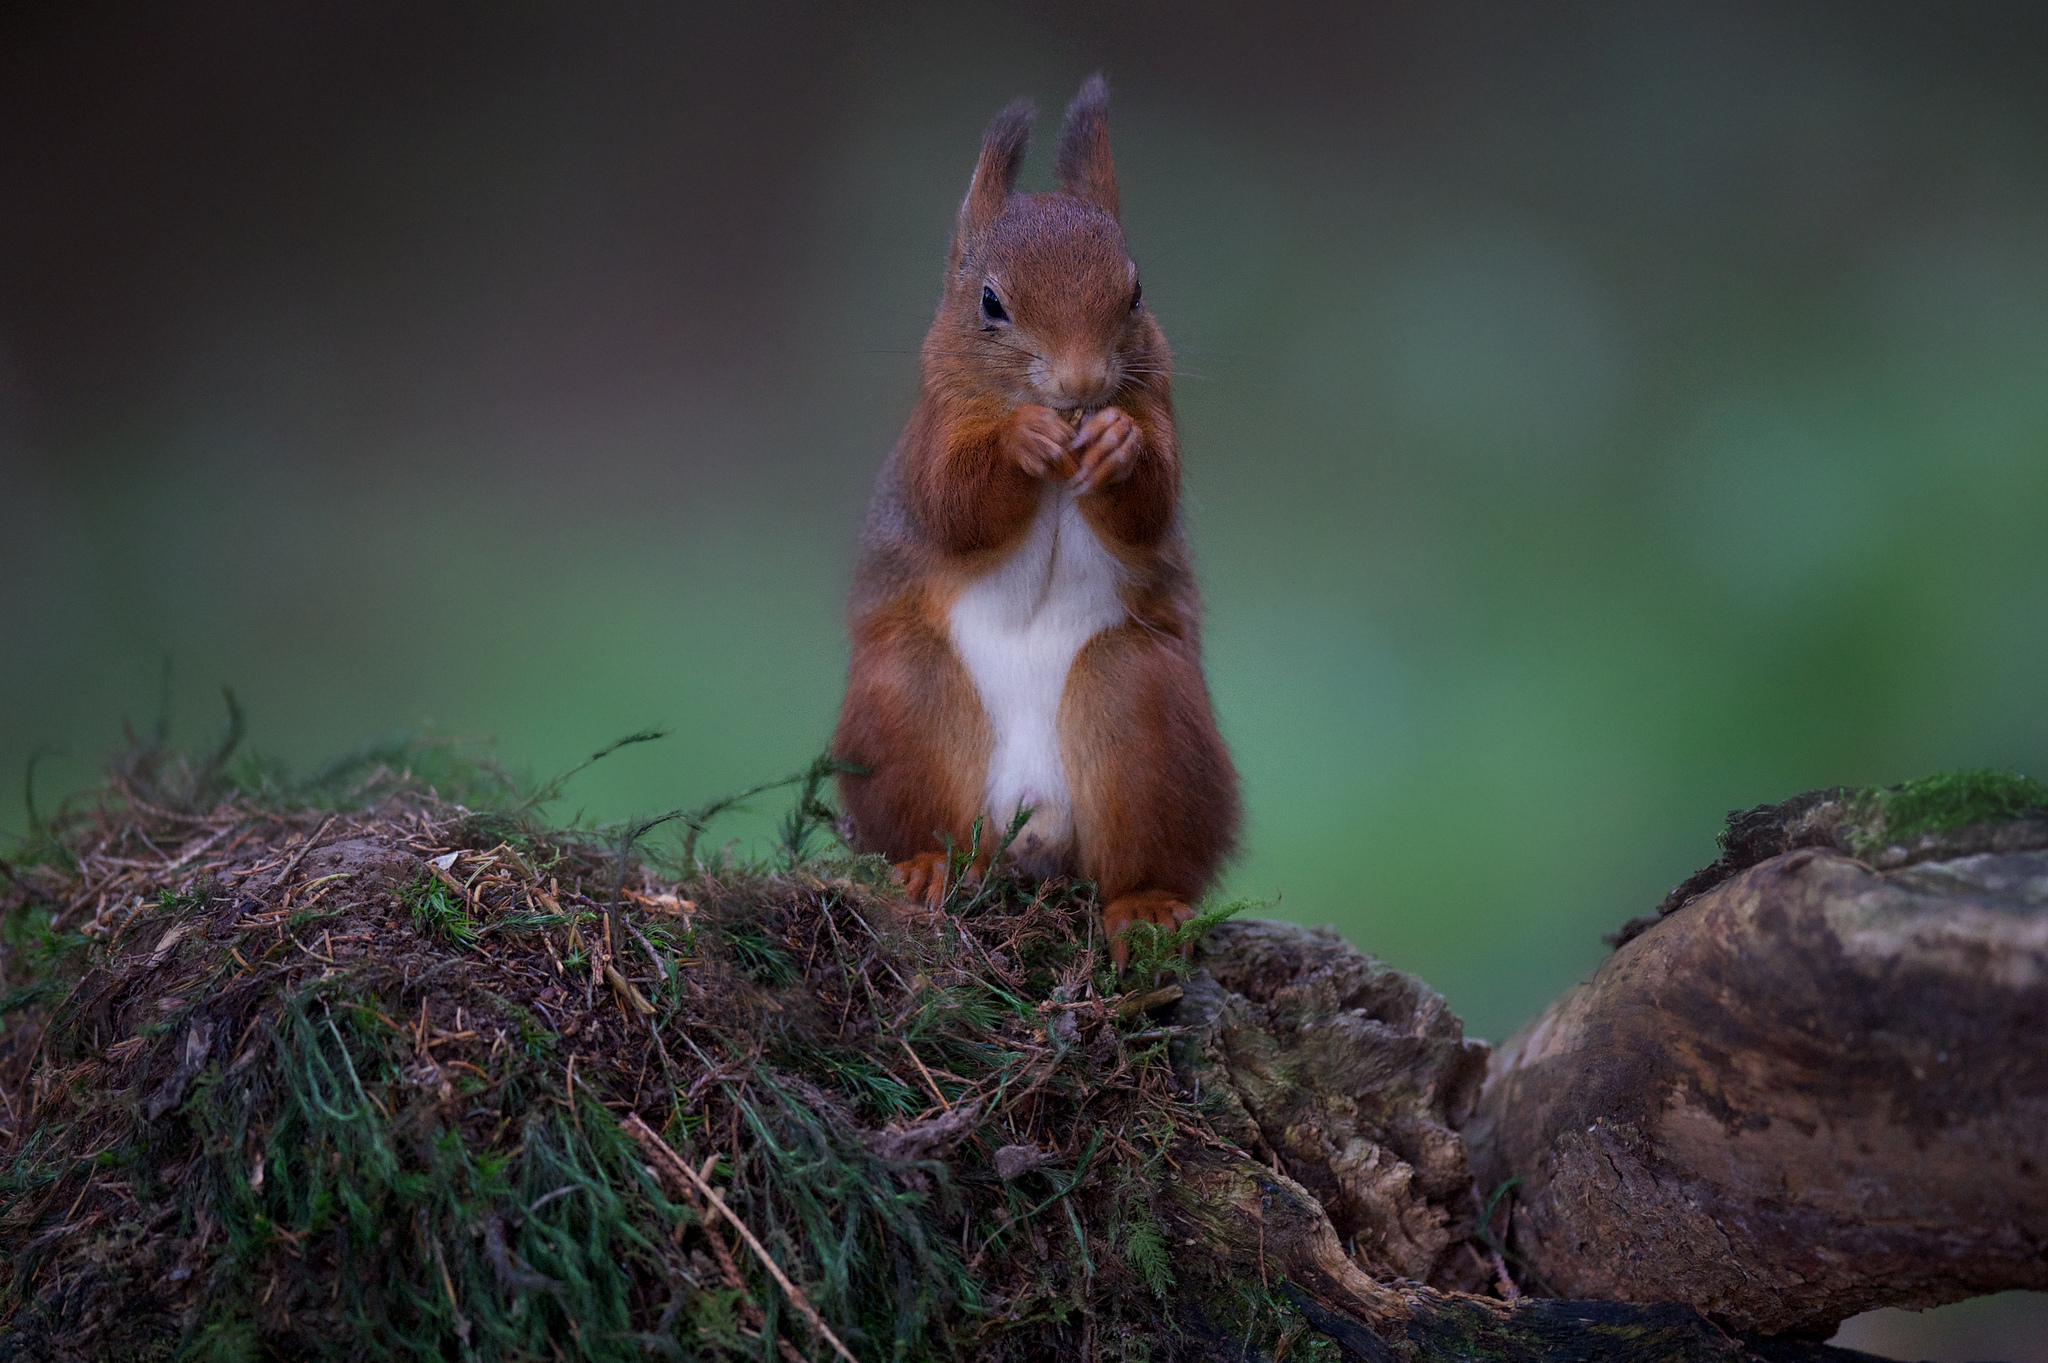 93561 download wallpaper Animals, Squirrel, Food, Stones, Redhead, Moss screensavers and pictures for free